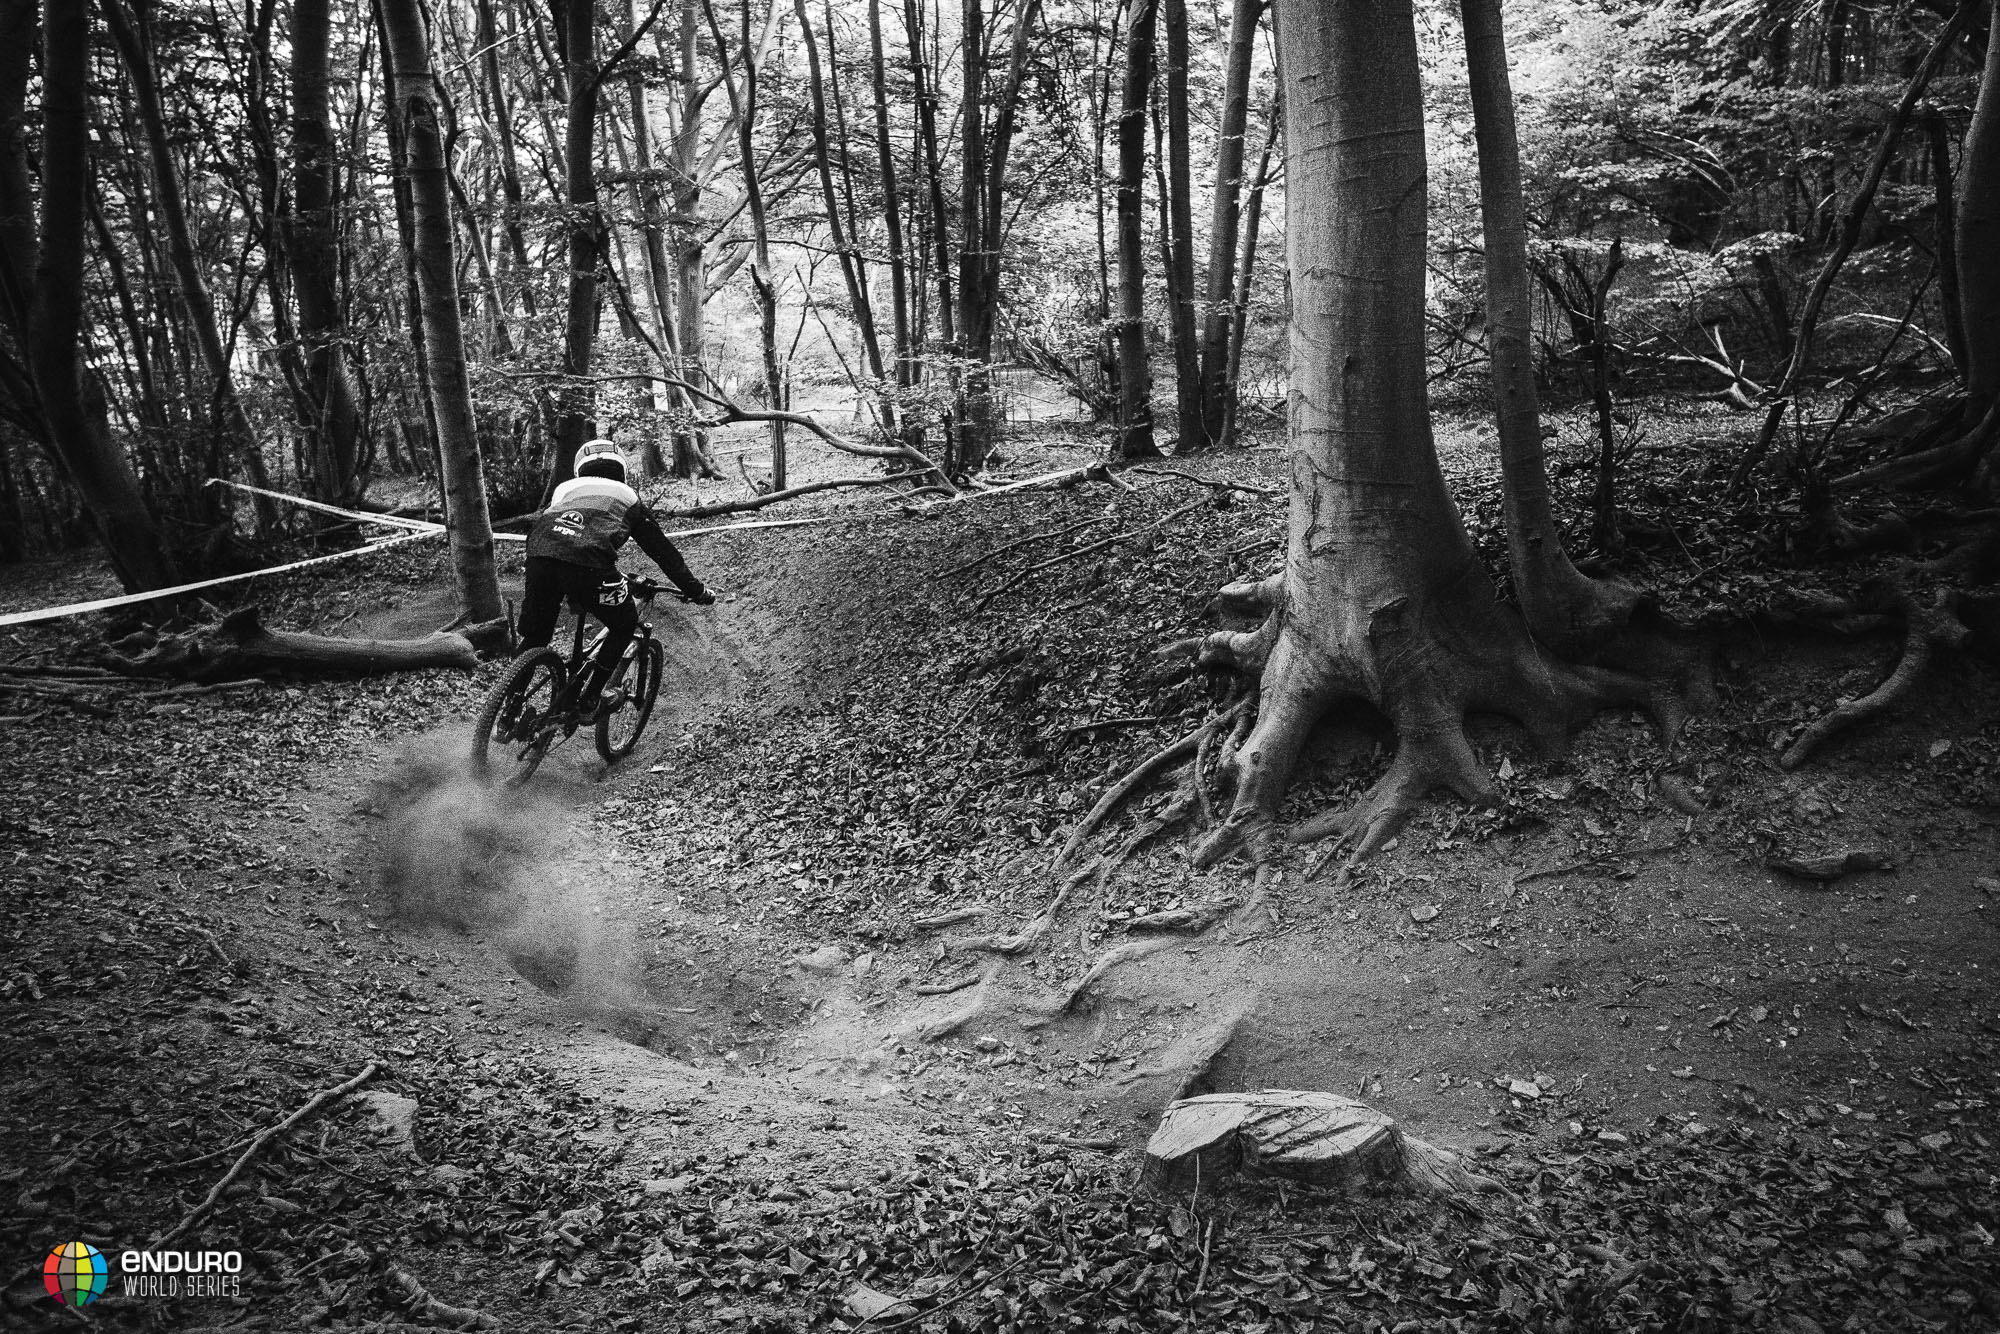 The roost trail follows Florian Nicolai as he goes scandi on stage 4. He finished up 8th this weekend and 4th in the series overall!